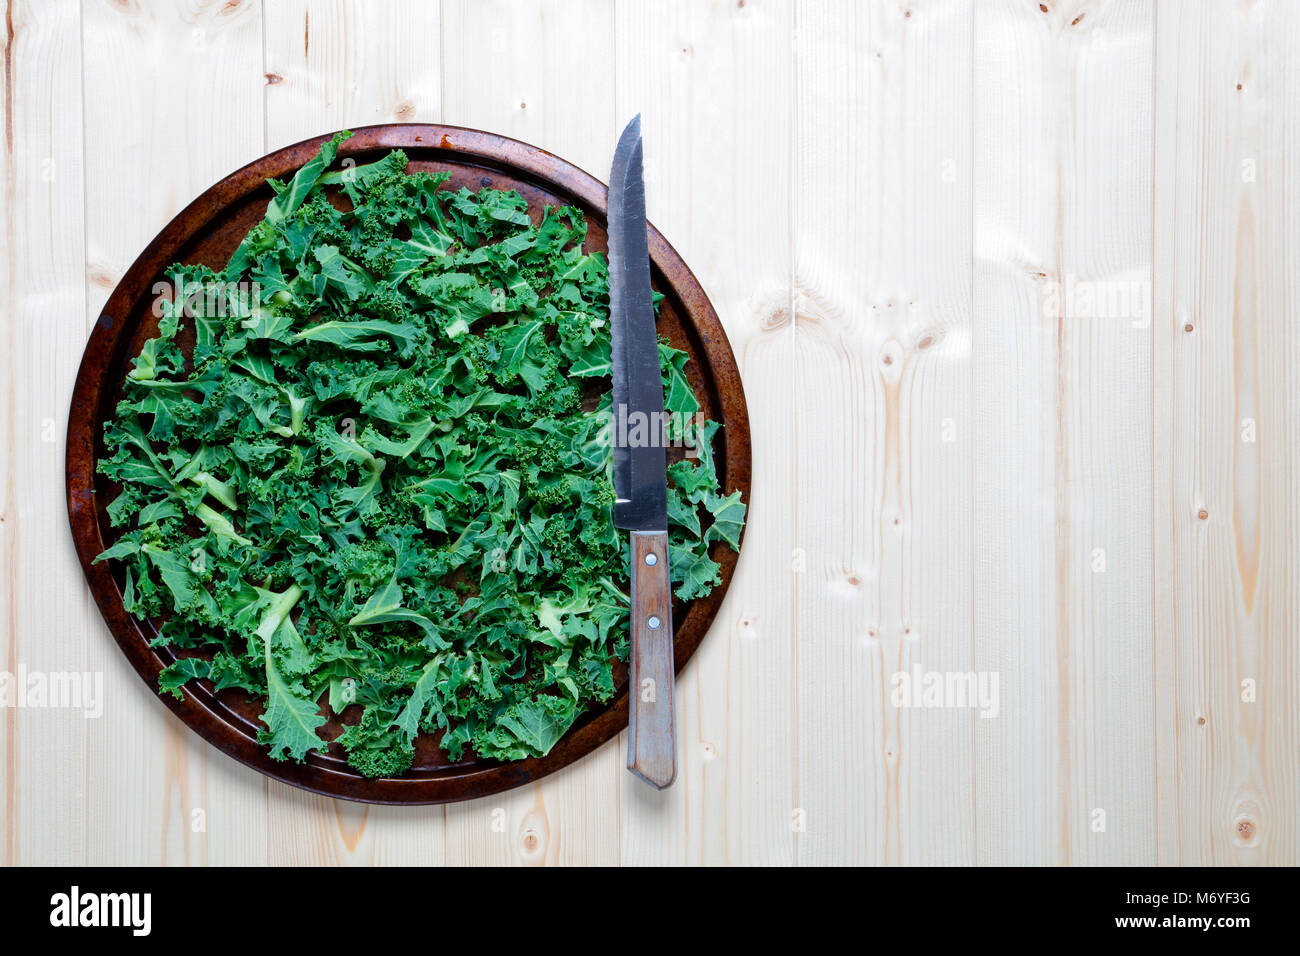 Fresh chopped prepared kale on old metal platter with knife - Stock Image